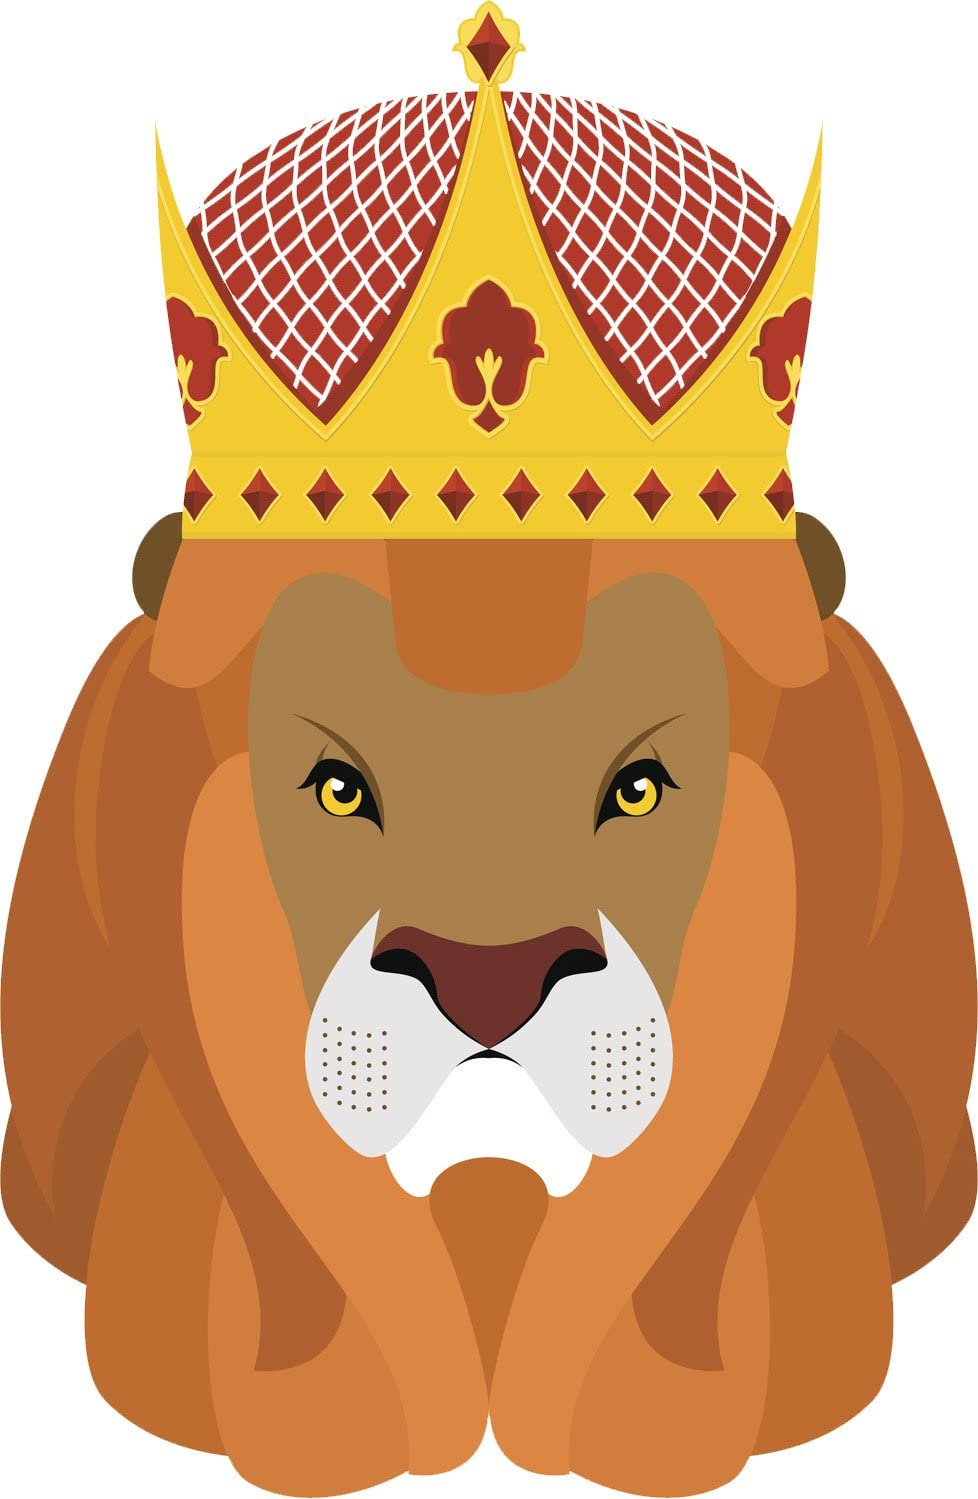 Amazon Com Angry Grumpy Lion Majestic King With Crown Cartoon Icon Vinyl Decal Sticker 2 4 8 12 Tall Automotive Lion prince simba and his father are targeted by his bitter uncle, who wants to ascend the throne himself. crown cartoon icon vinyl decal sticker